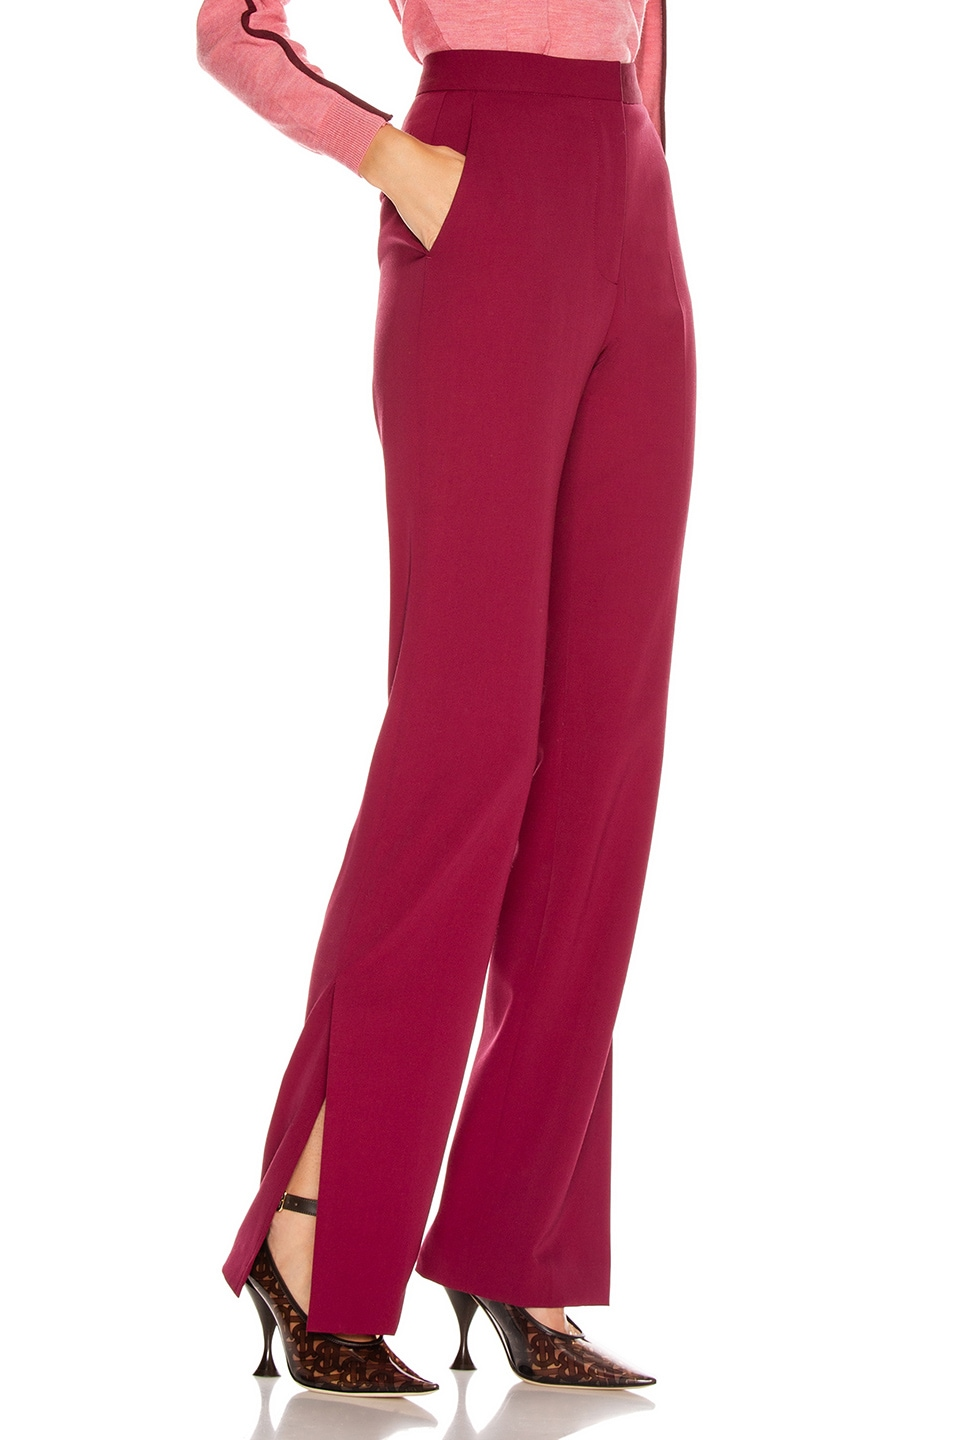 Image 2 of Stella McCartney Tailored Stretch Trouser in Dark Jazzberry